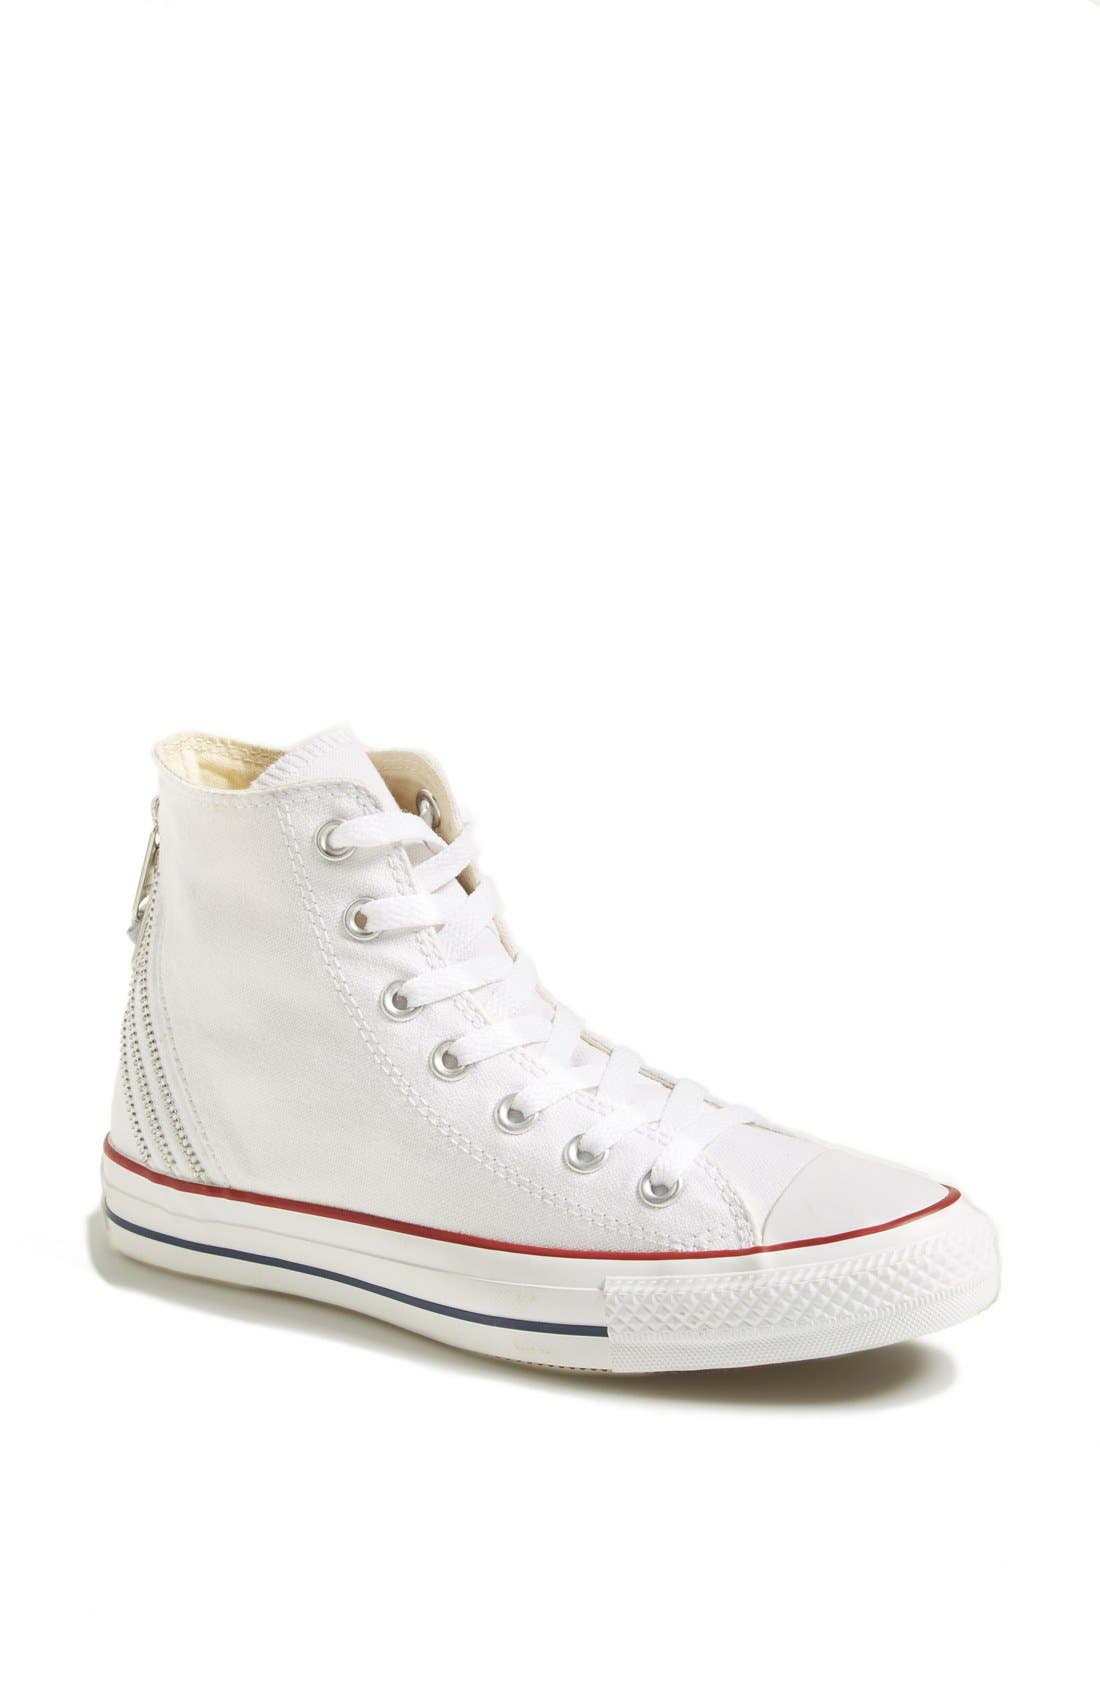 Alternate Image 1 Selected - Converse Chuck Taylor® All Star® Triple Zip Canvas Sneaker (Women)